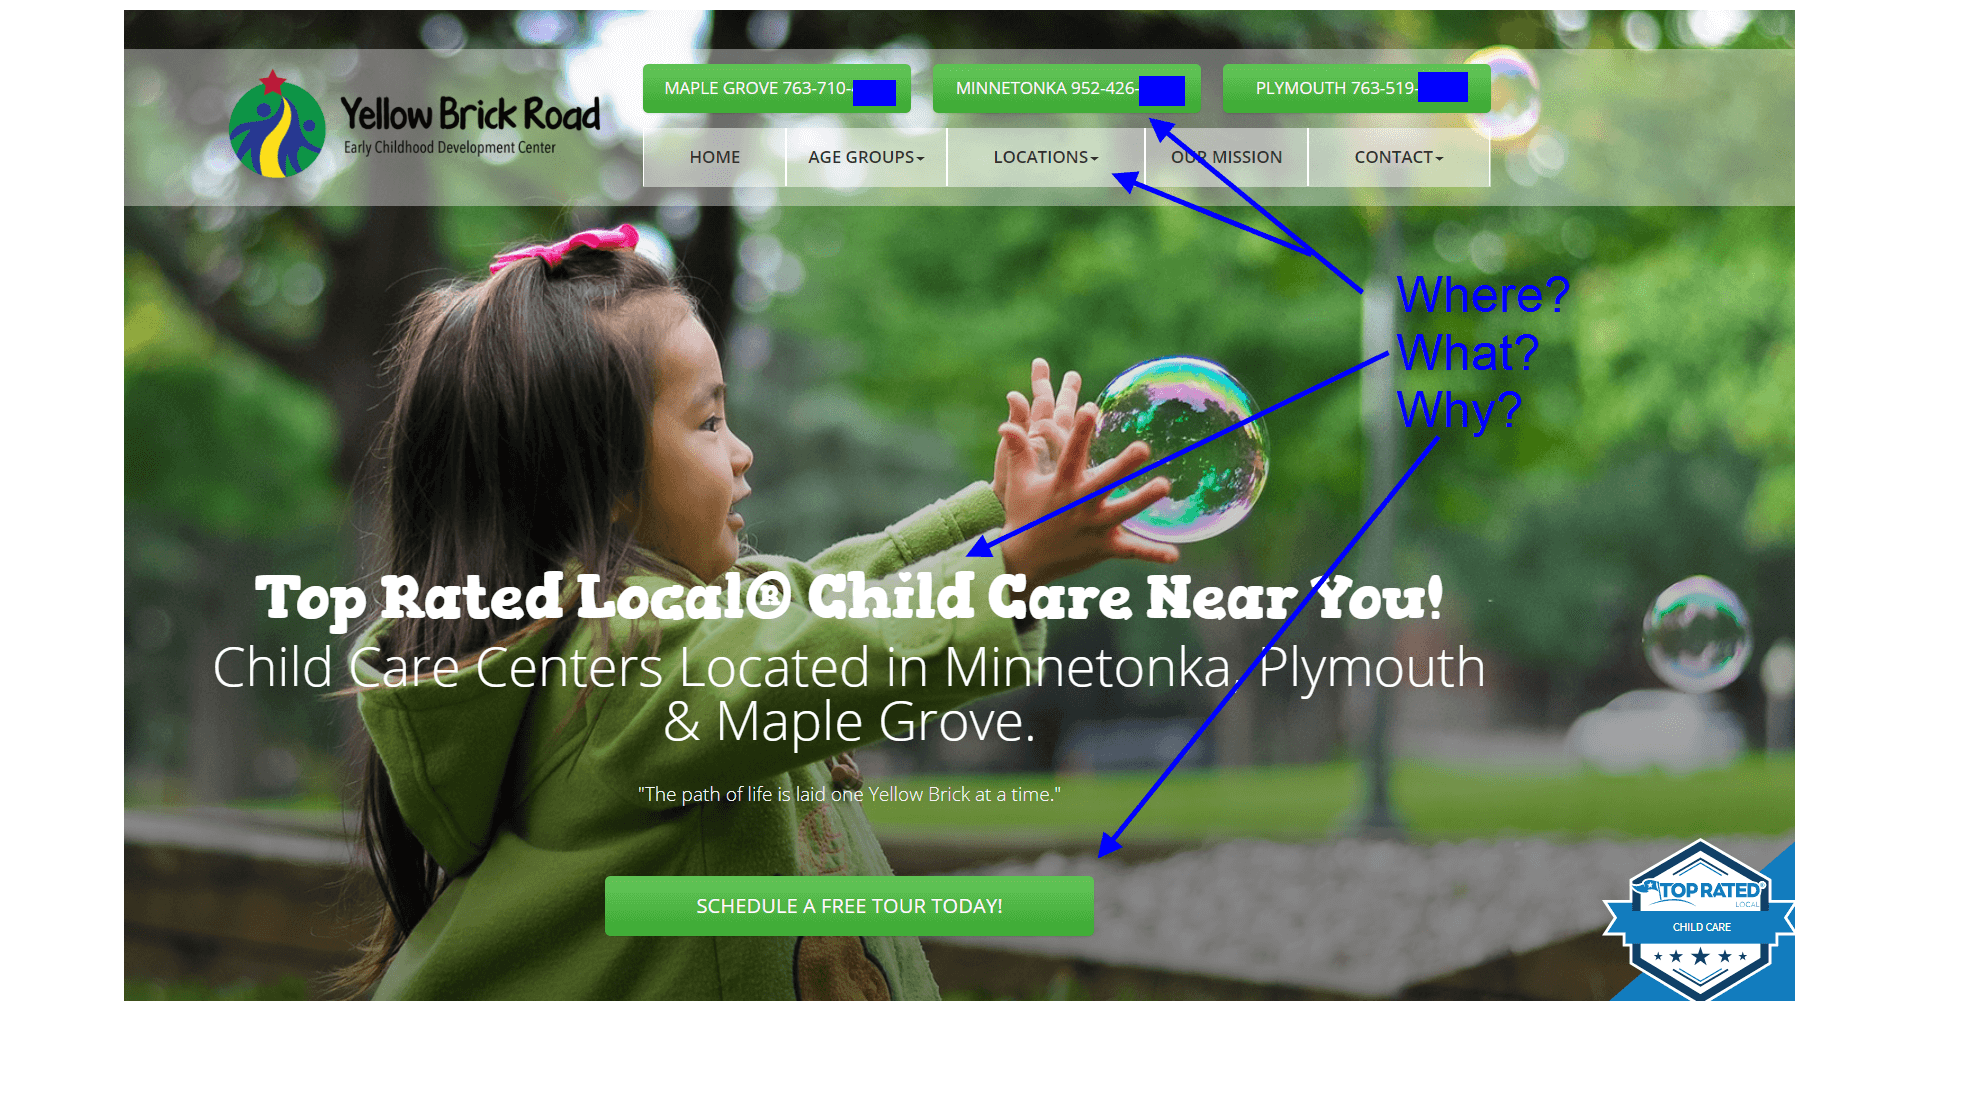 Case Study: Child Care Offers Content with Clarity